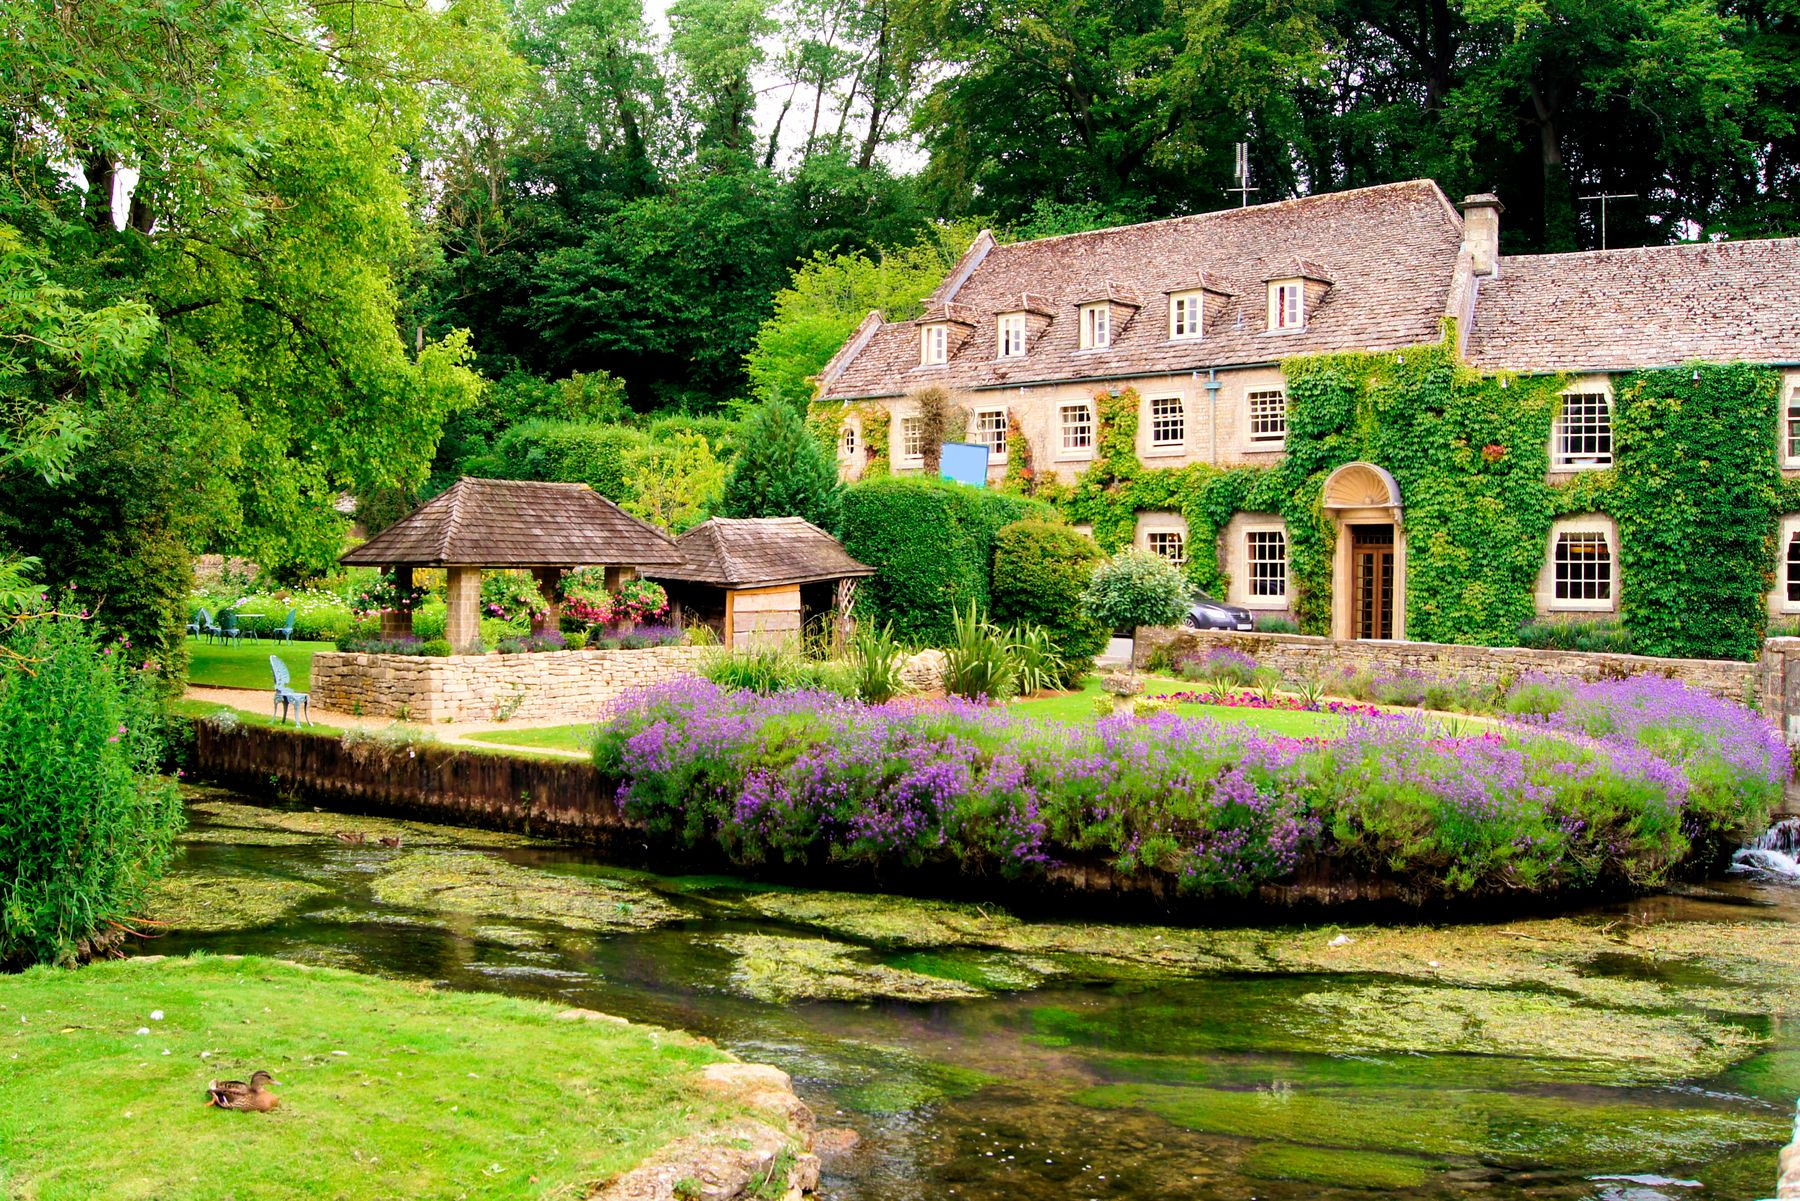 Bibury, one of the most picturesque villages in England, set in the Cotswolds